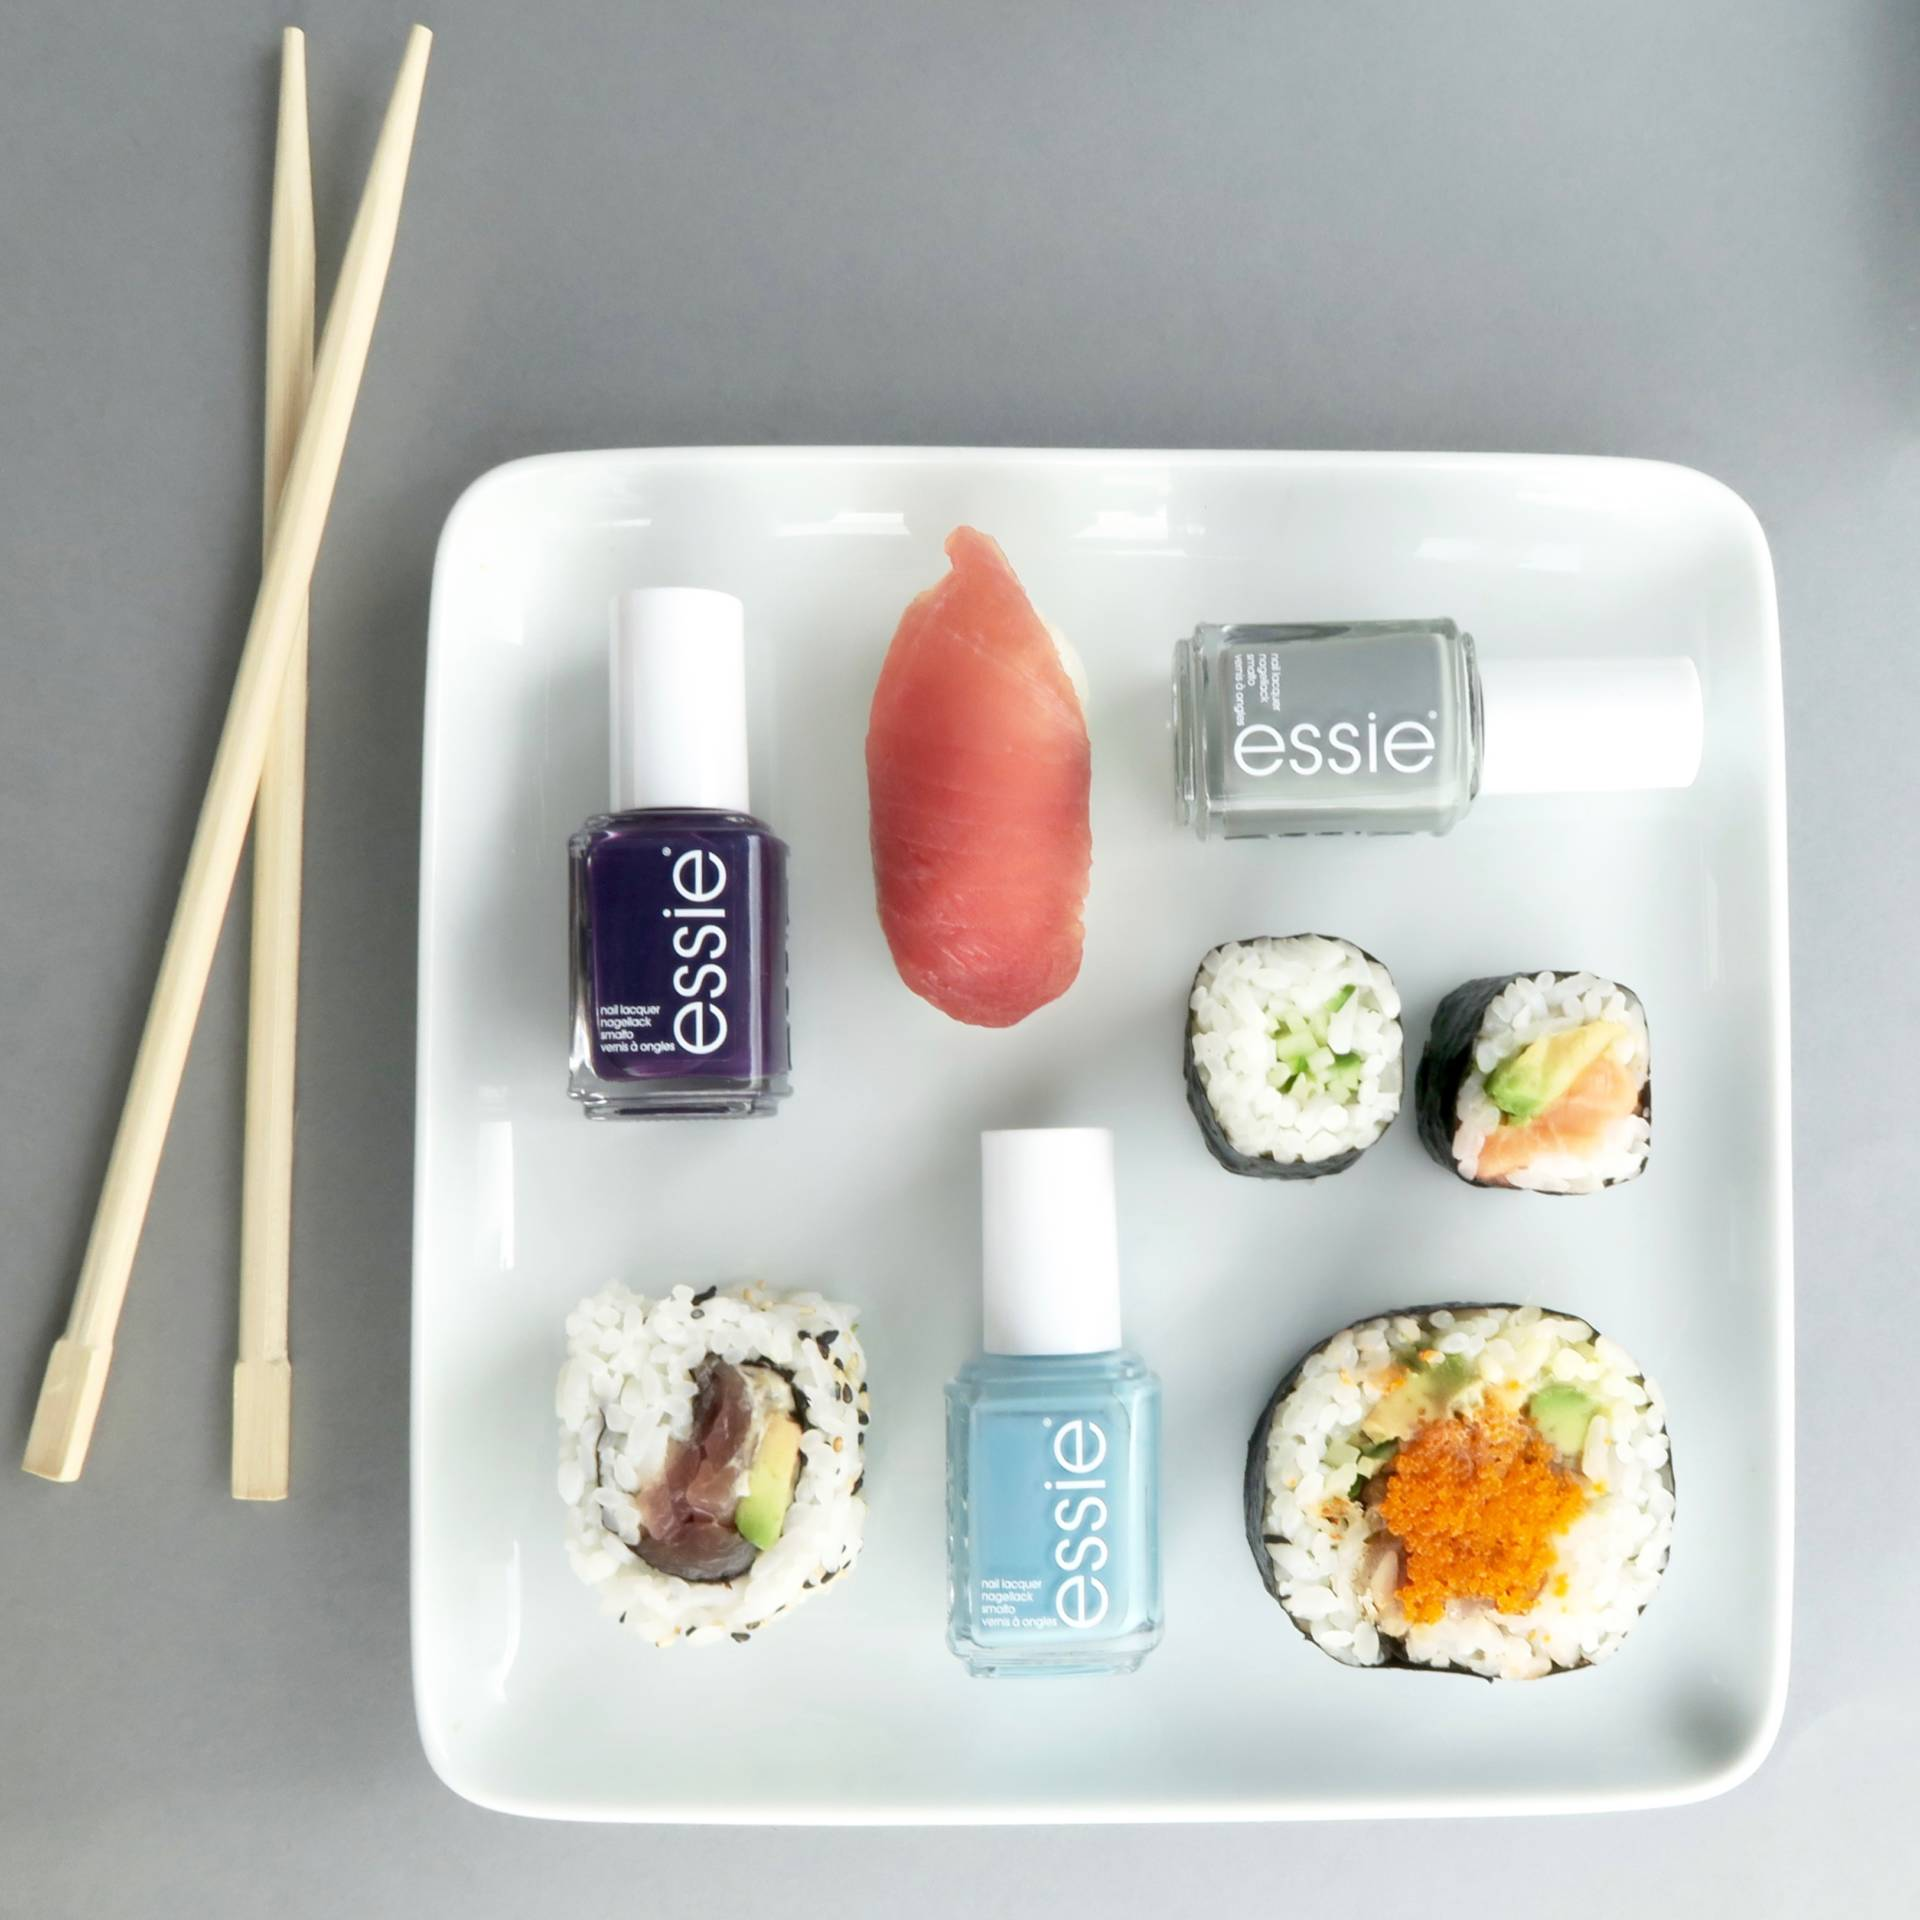 Essie Fall Collection 2016 Tokyo Review - Talonted Lex